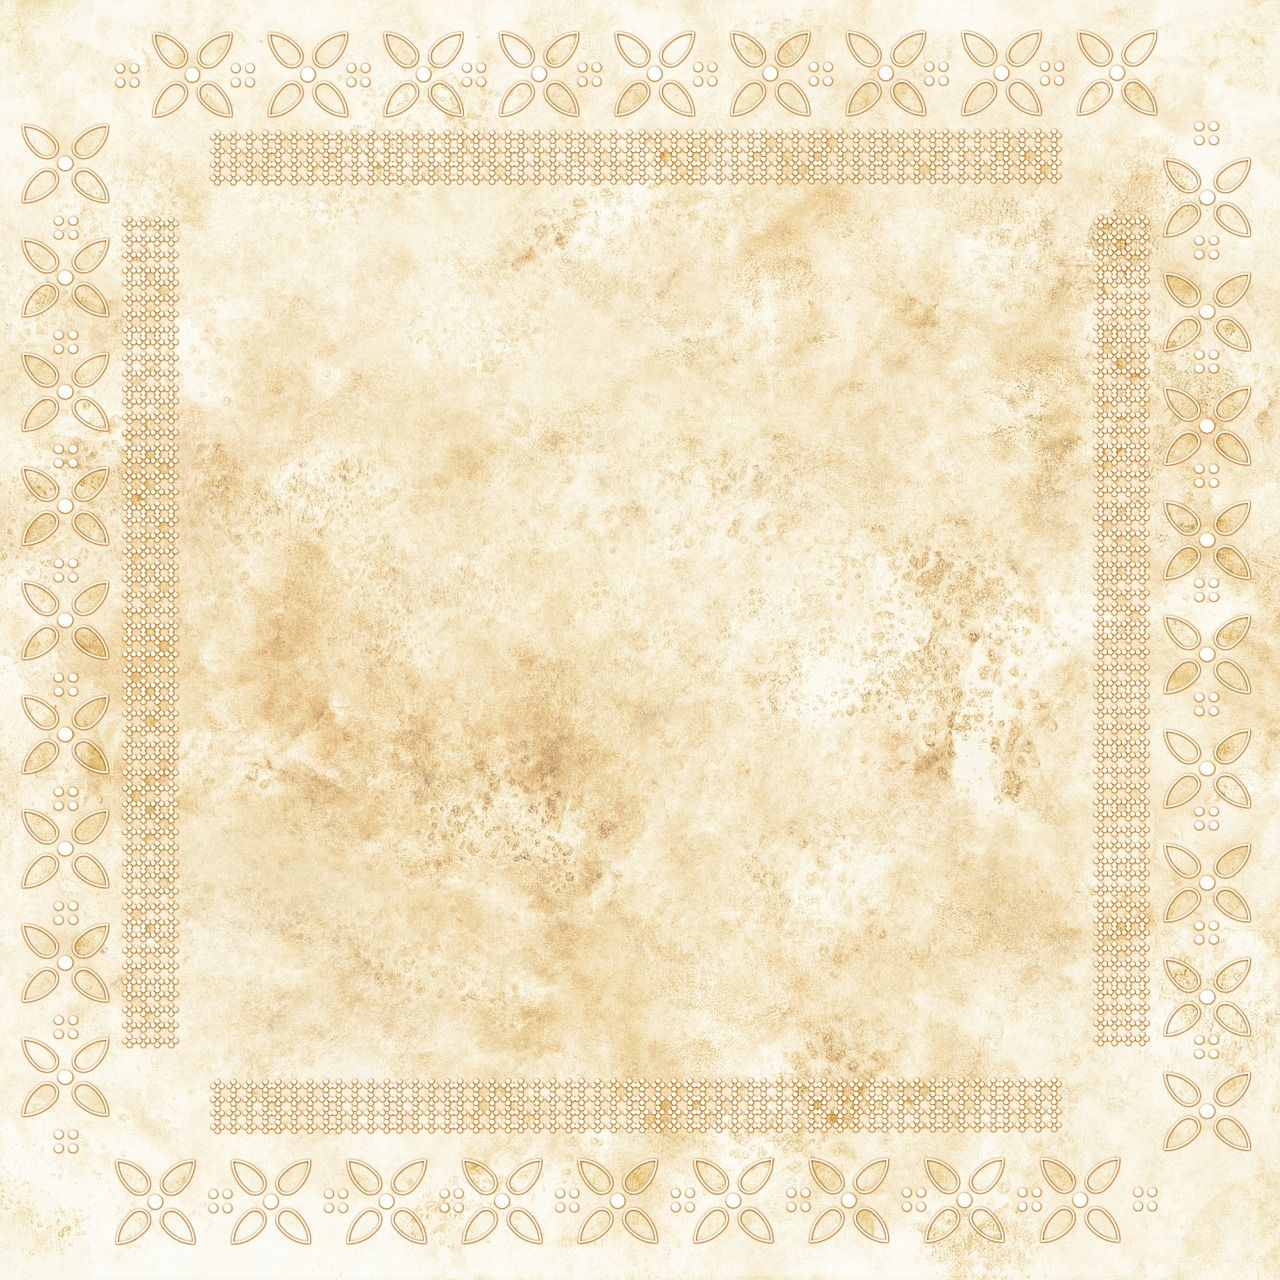 Old Paper Wallpaper: Vintage, Background, Old, Paper